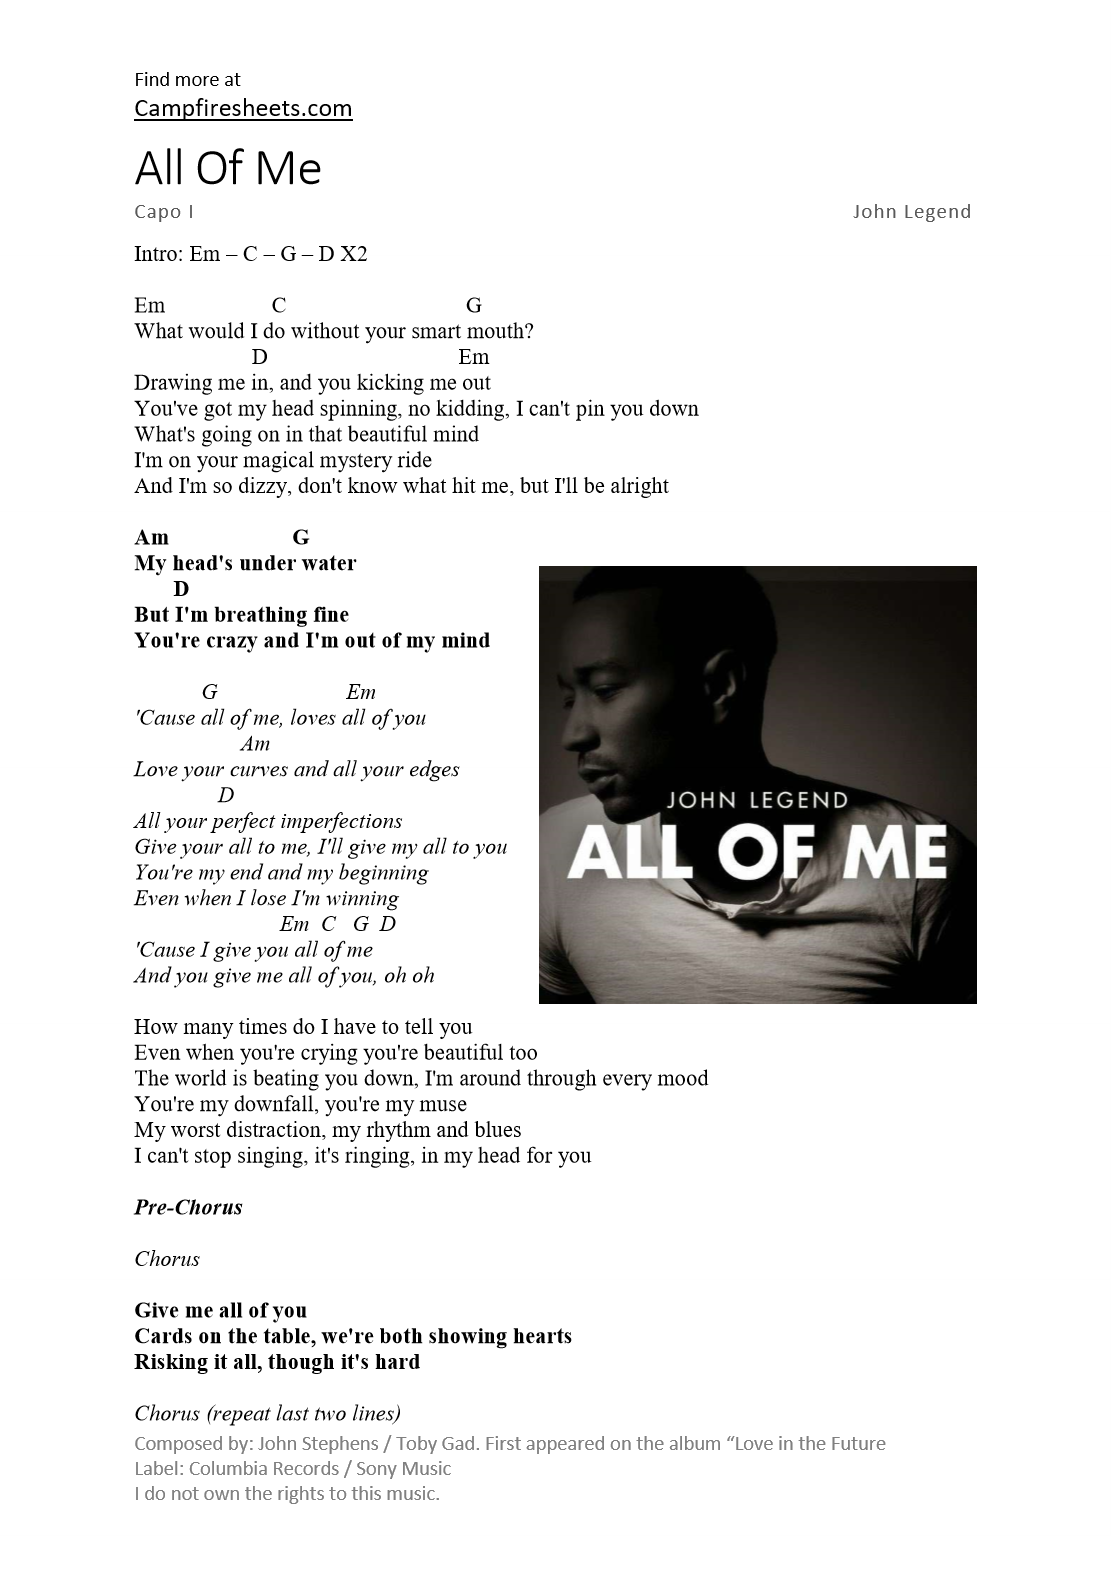 All of me john legend 1 page sheet music chords and lyrics hexwebz Images